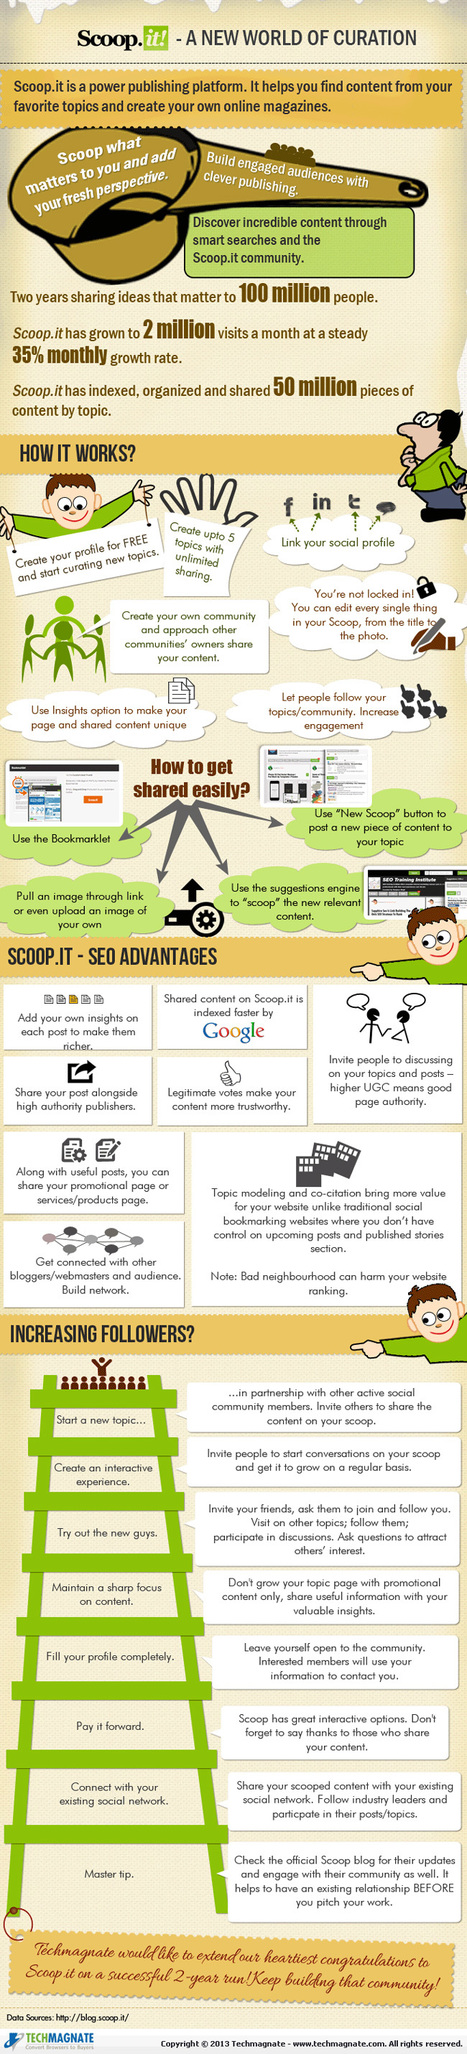 Scoop.It for SEO – A New World of Curation [Infographic] | Educational technology | Scoop.it